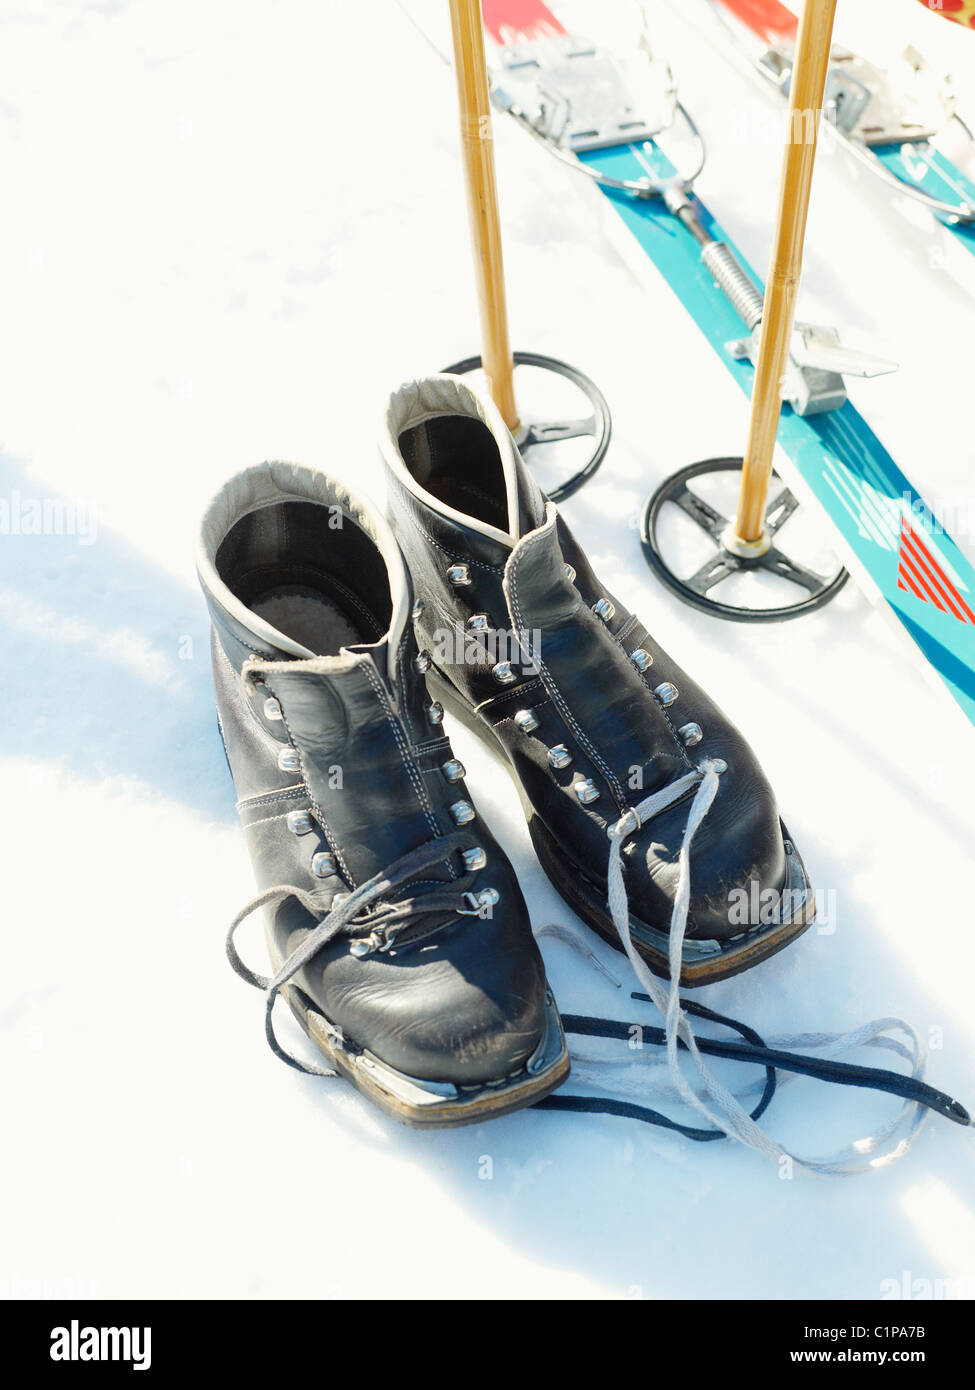 Skiing equipment - Stock Image